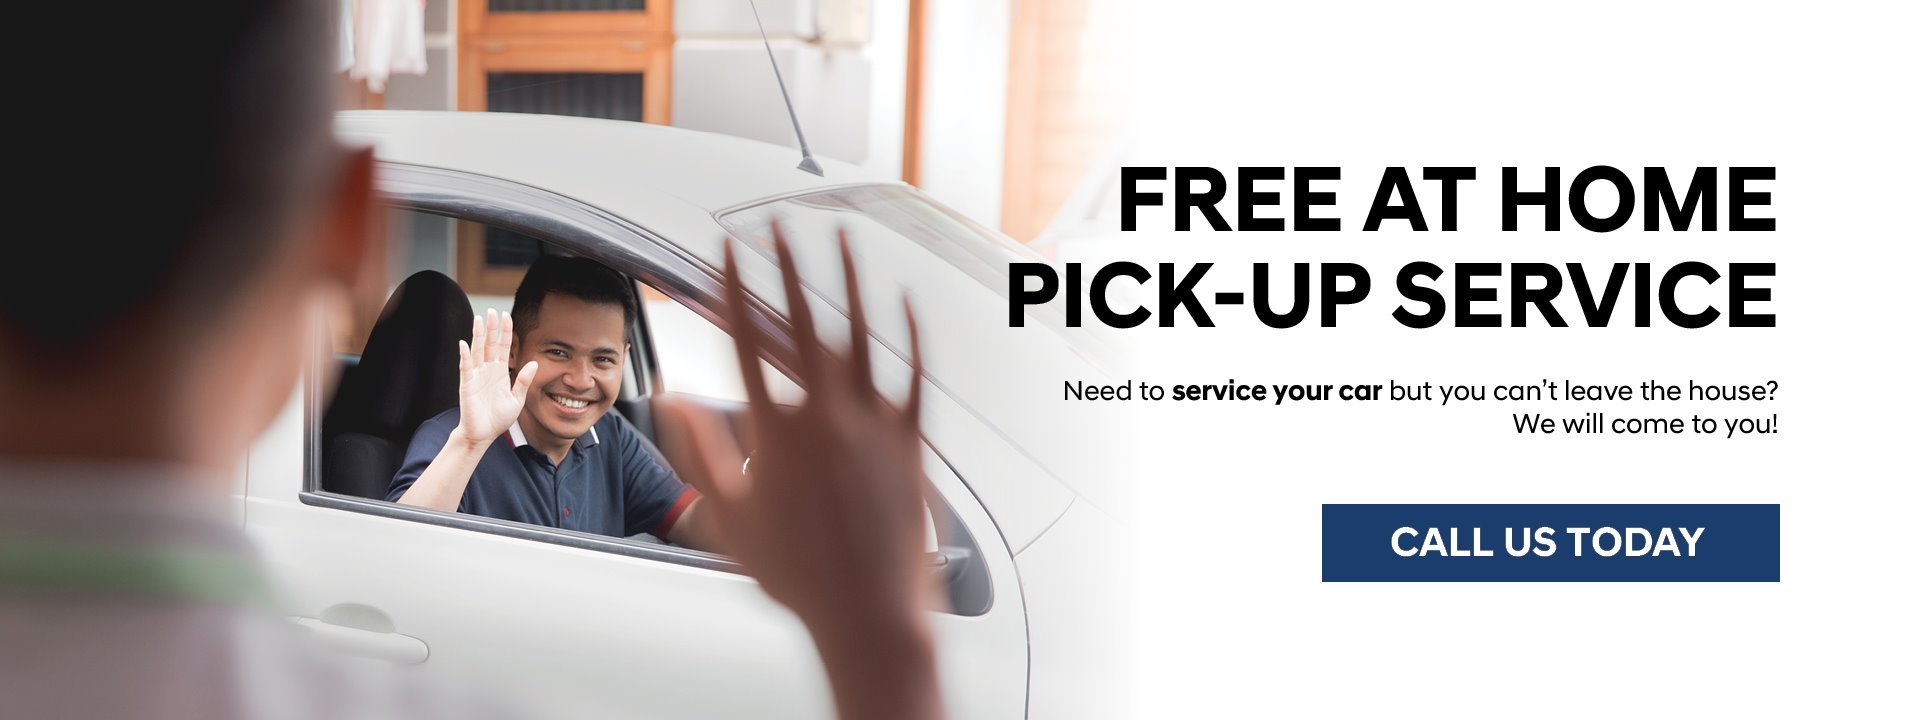 Home Pick Up Service Hyundai